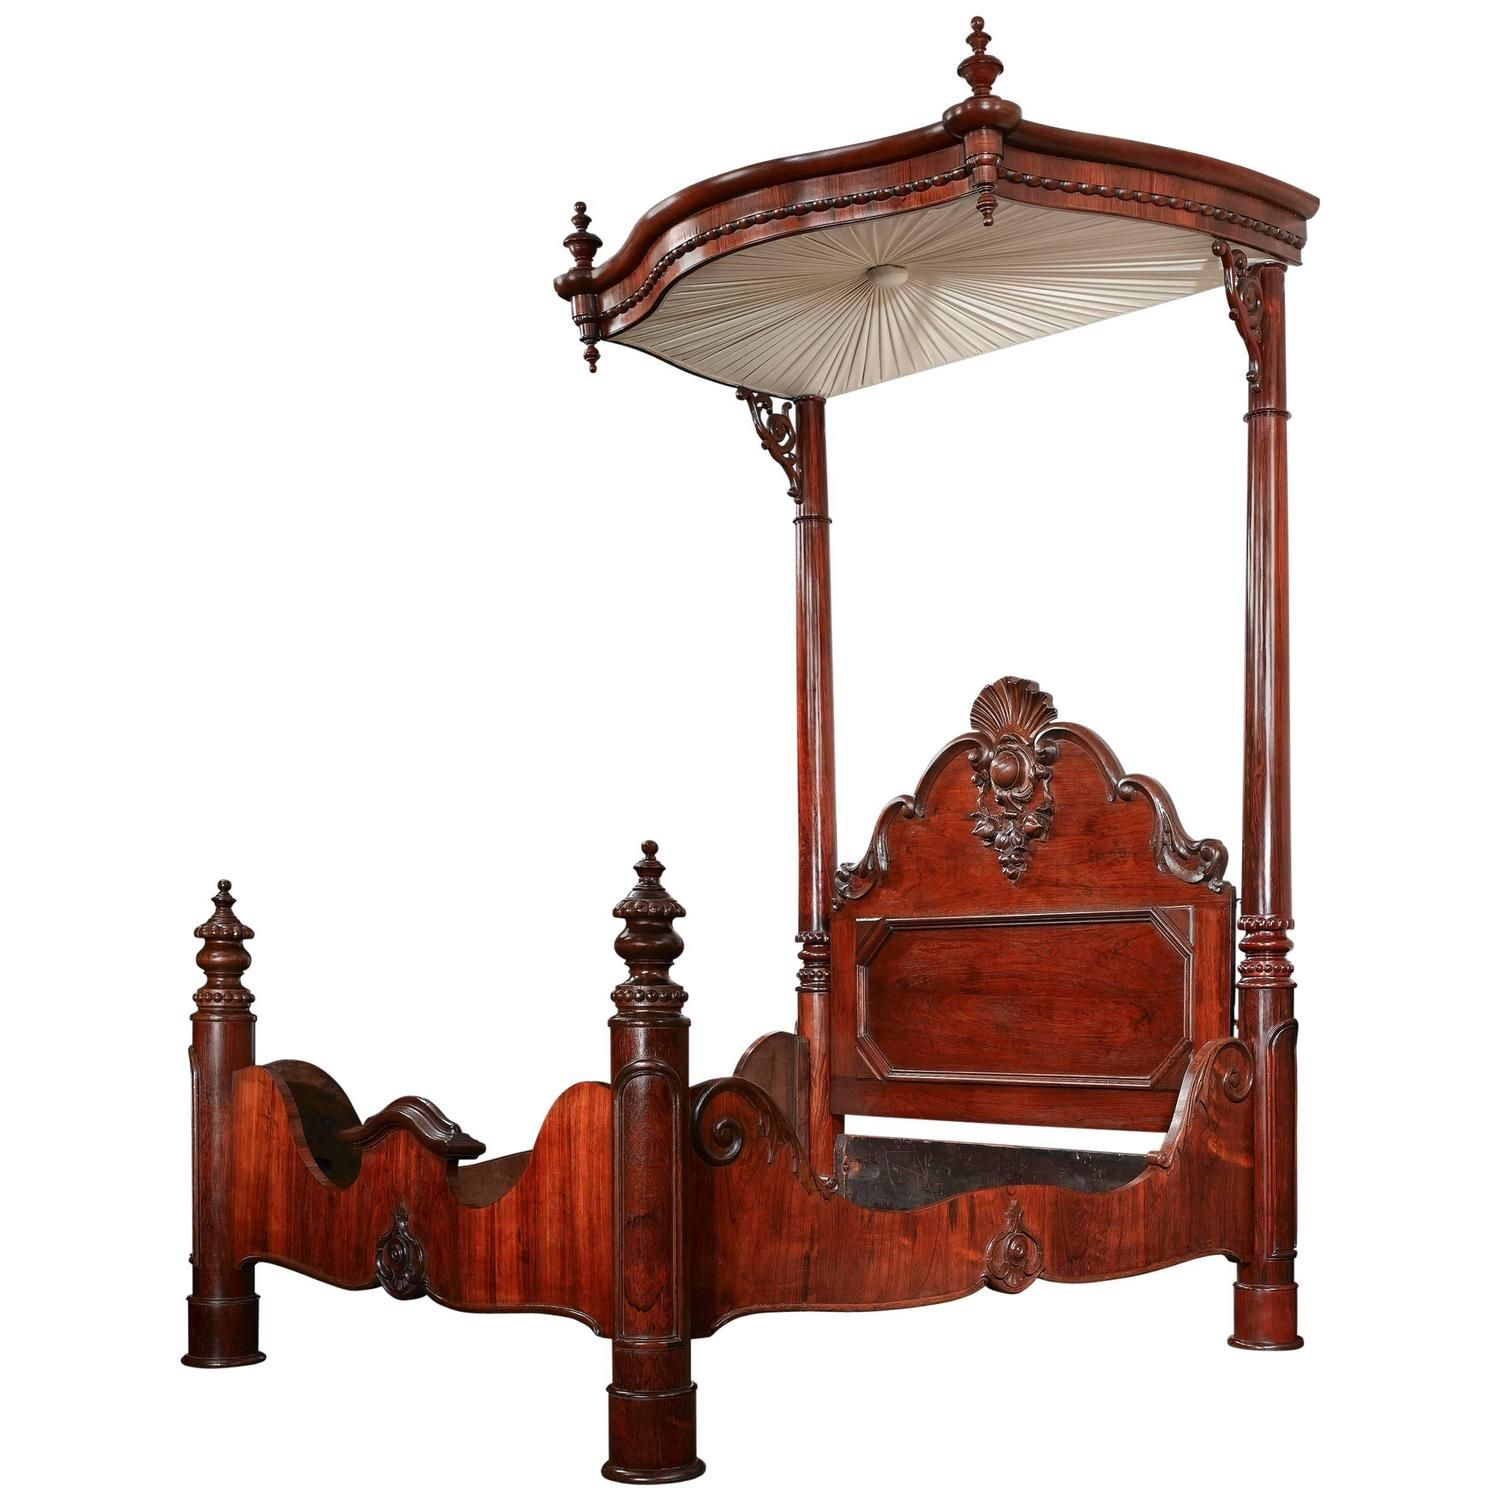 ... for sale at - This exceptional American Rococo Revival half-tester bed  displays the hallmarks of the great New Orleans cabinetmaker Prudent  Mallard, ... - Prudent Mallard Half-Tester Bed Mallard, Bed Frames And Rococo